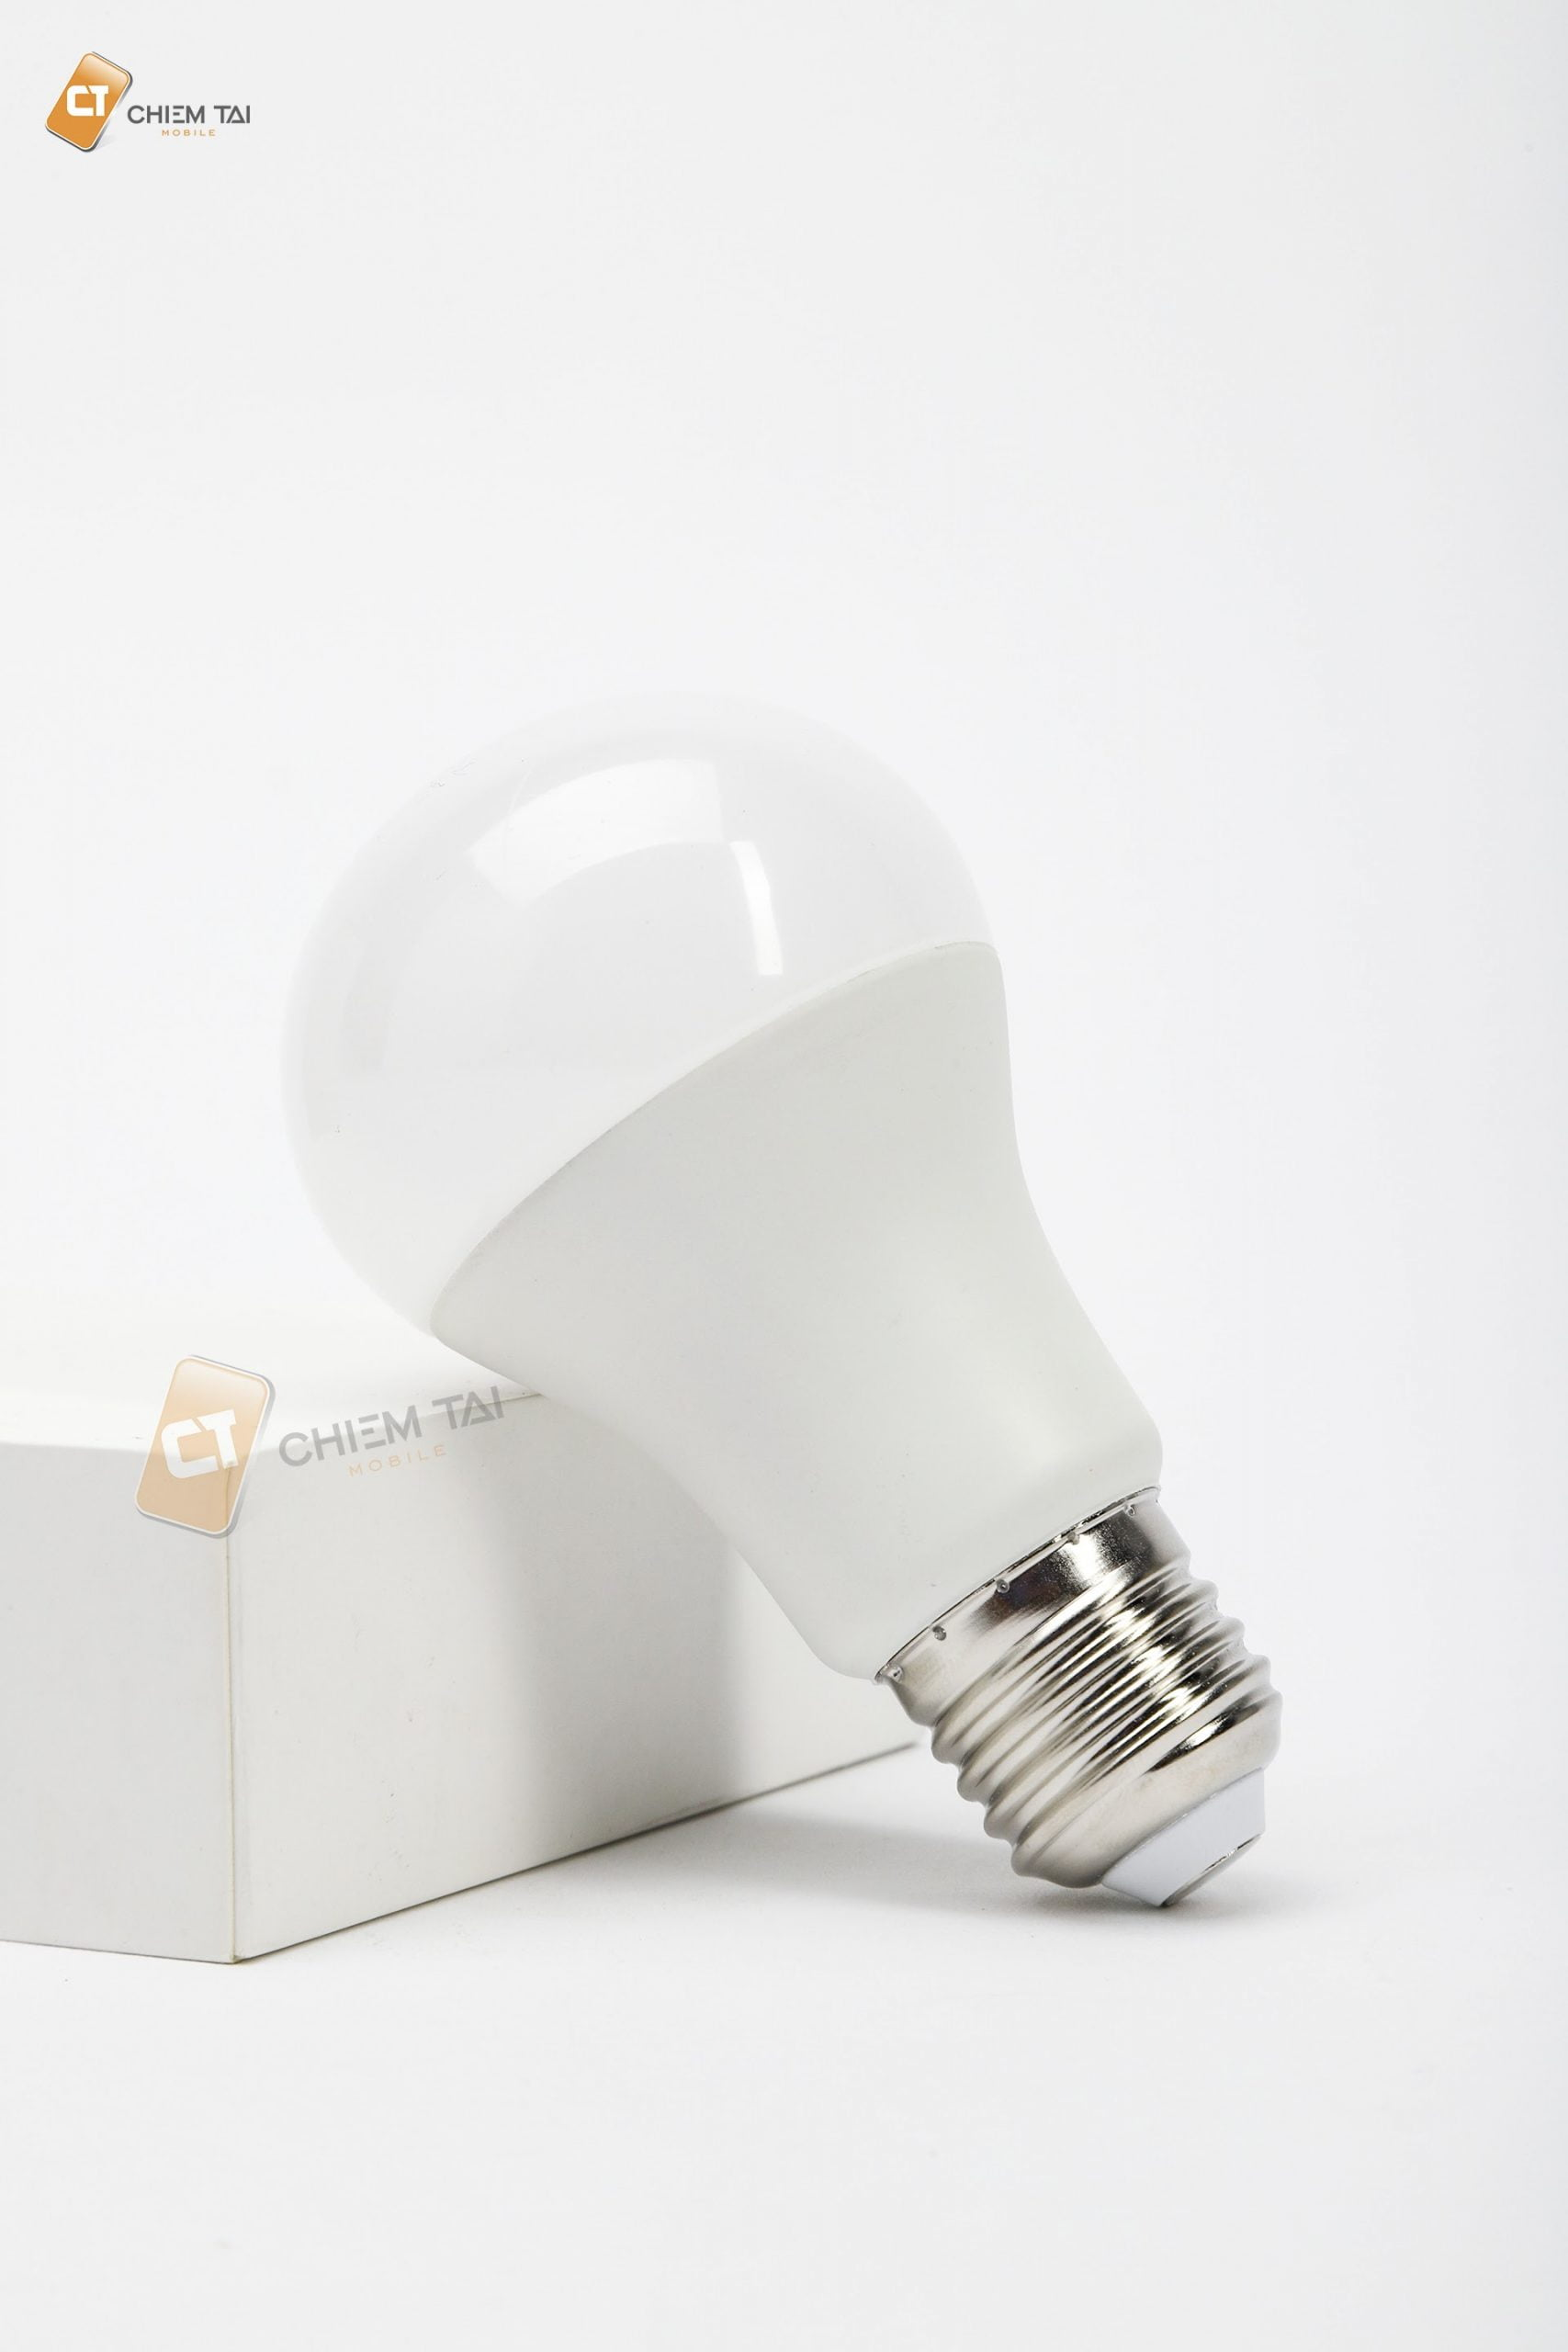 bong den led thong minh philips color xiaomi mijia 6017b8b85a204 scaled